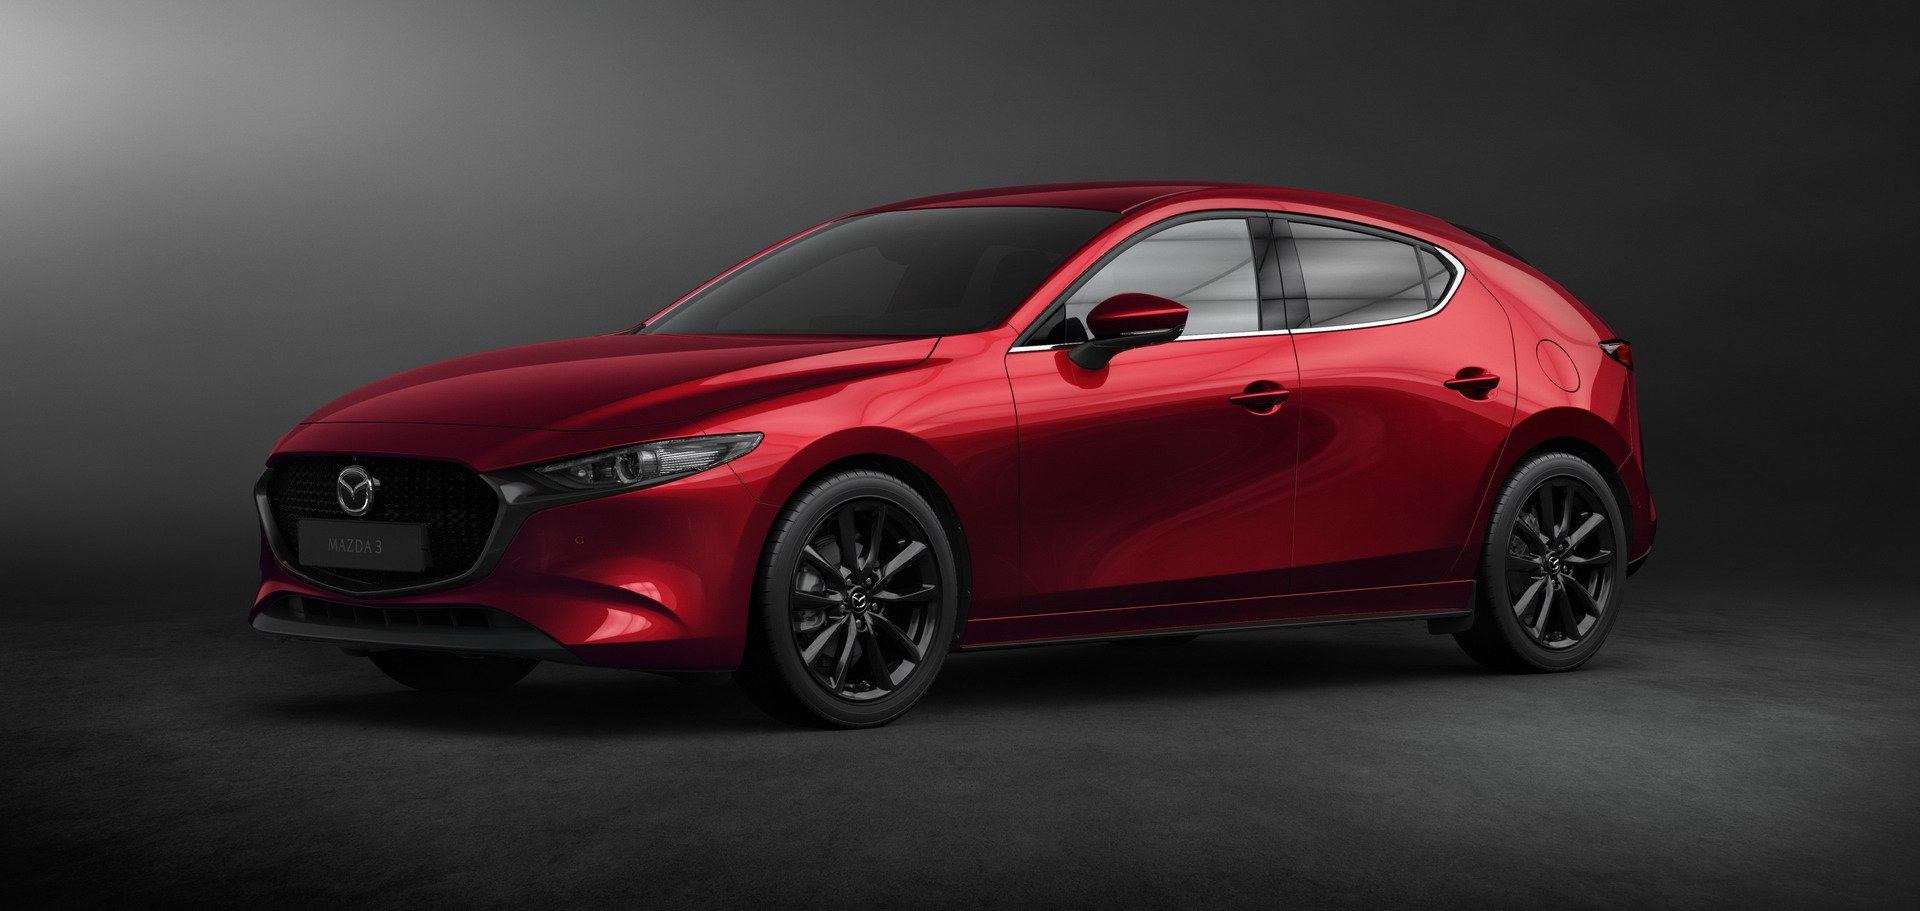 Mazda3 Hatchback and Mazda3 sedan 2019 (10)